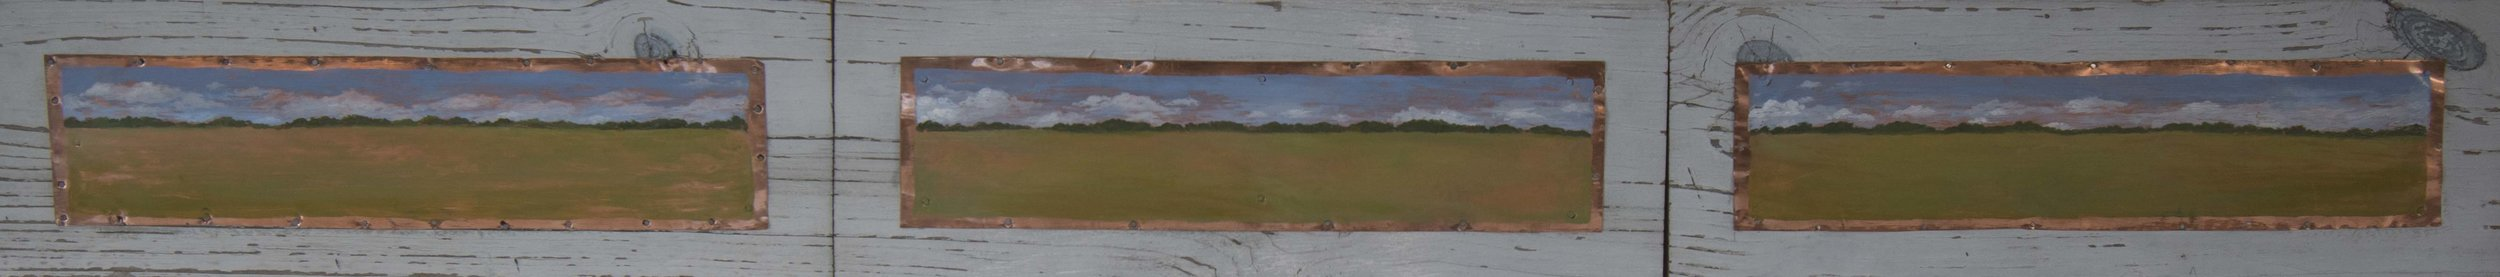 "West of Columbus 1997  Oil on copper  5 1/2"" x 75"""